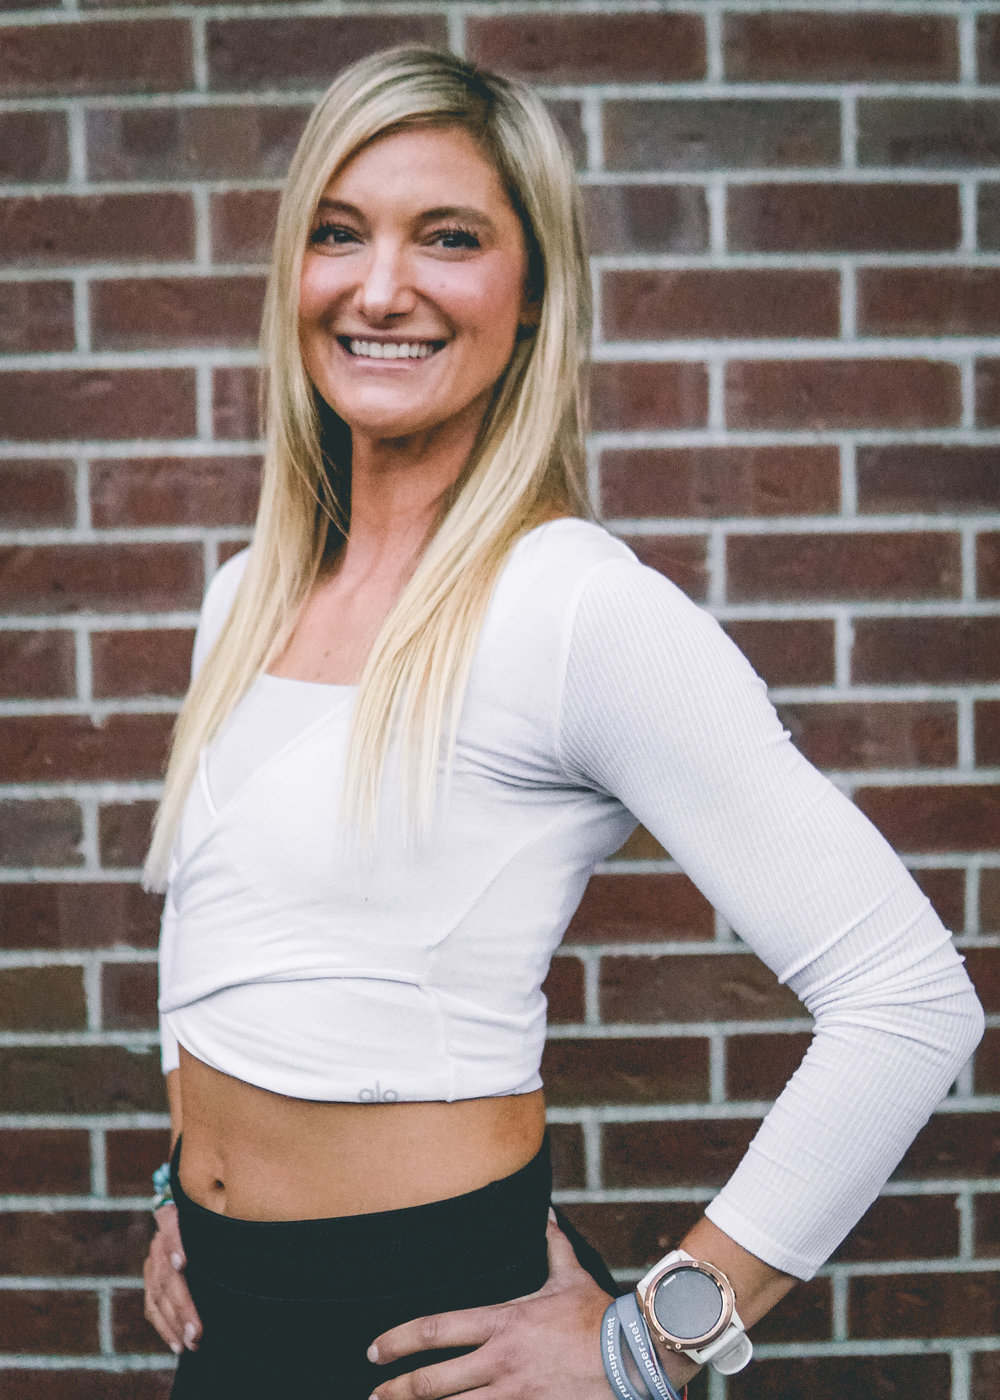 Sabrina - OWNER, LEAD HIGH INTENSITY INSTRUCTORBarre, HIIT, Kickboxing, Power Plus, Run SuperSabrina brings an element of fun to her classes. You may not know exactly what you will get in class as she likes to incorporate many strength and mobility movements by mixing up the equipment or use of the body. She intentionally does this to encourage activating all those muscles and get the biggest bang for your buck while she has you. Sabrina has been coaching and training in Tacoma for the last several years and is looking forward to helping you become the best version of yourself. Don't let her free spirit and humor distract you from her serious approach to training. She focuses on form to ward off injury and is a wealth of knowledge. Her background in science and art has trained her to approach life with a creative, yet scientific approach.You can also find her hitting the marathon and ultra circuit, putting on races or traveling with her pace team across the nation. Ask this entrepreneur what else she has up her sleeve!